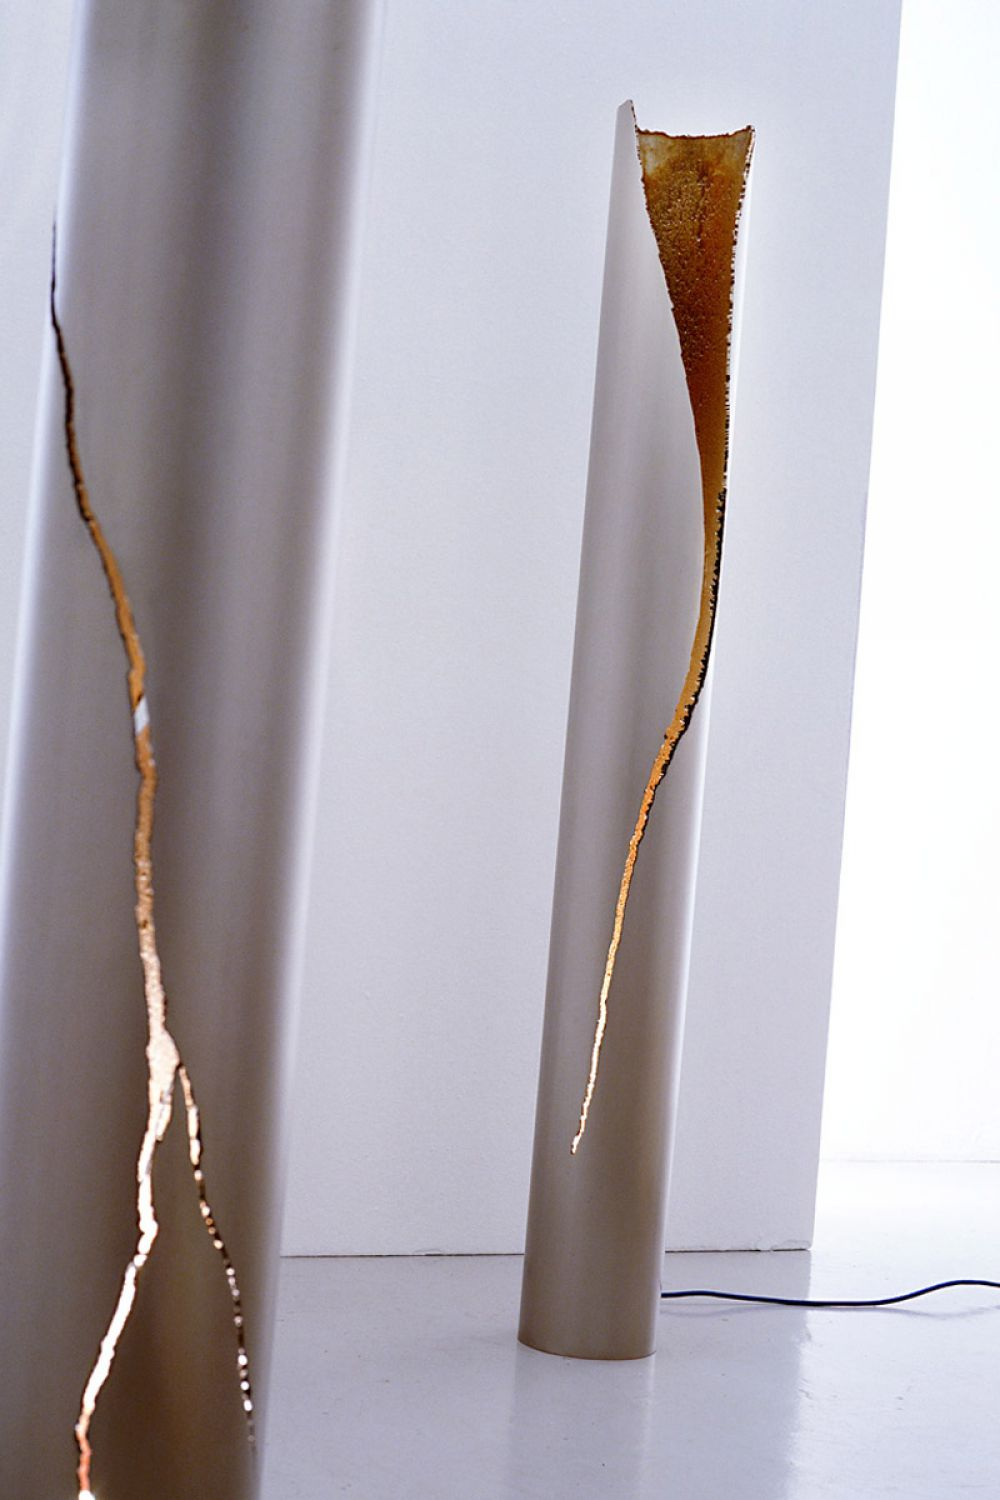 CUT I and II Sculptural Lighting : Stainless Steel